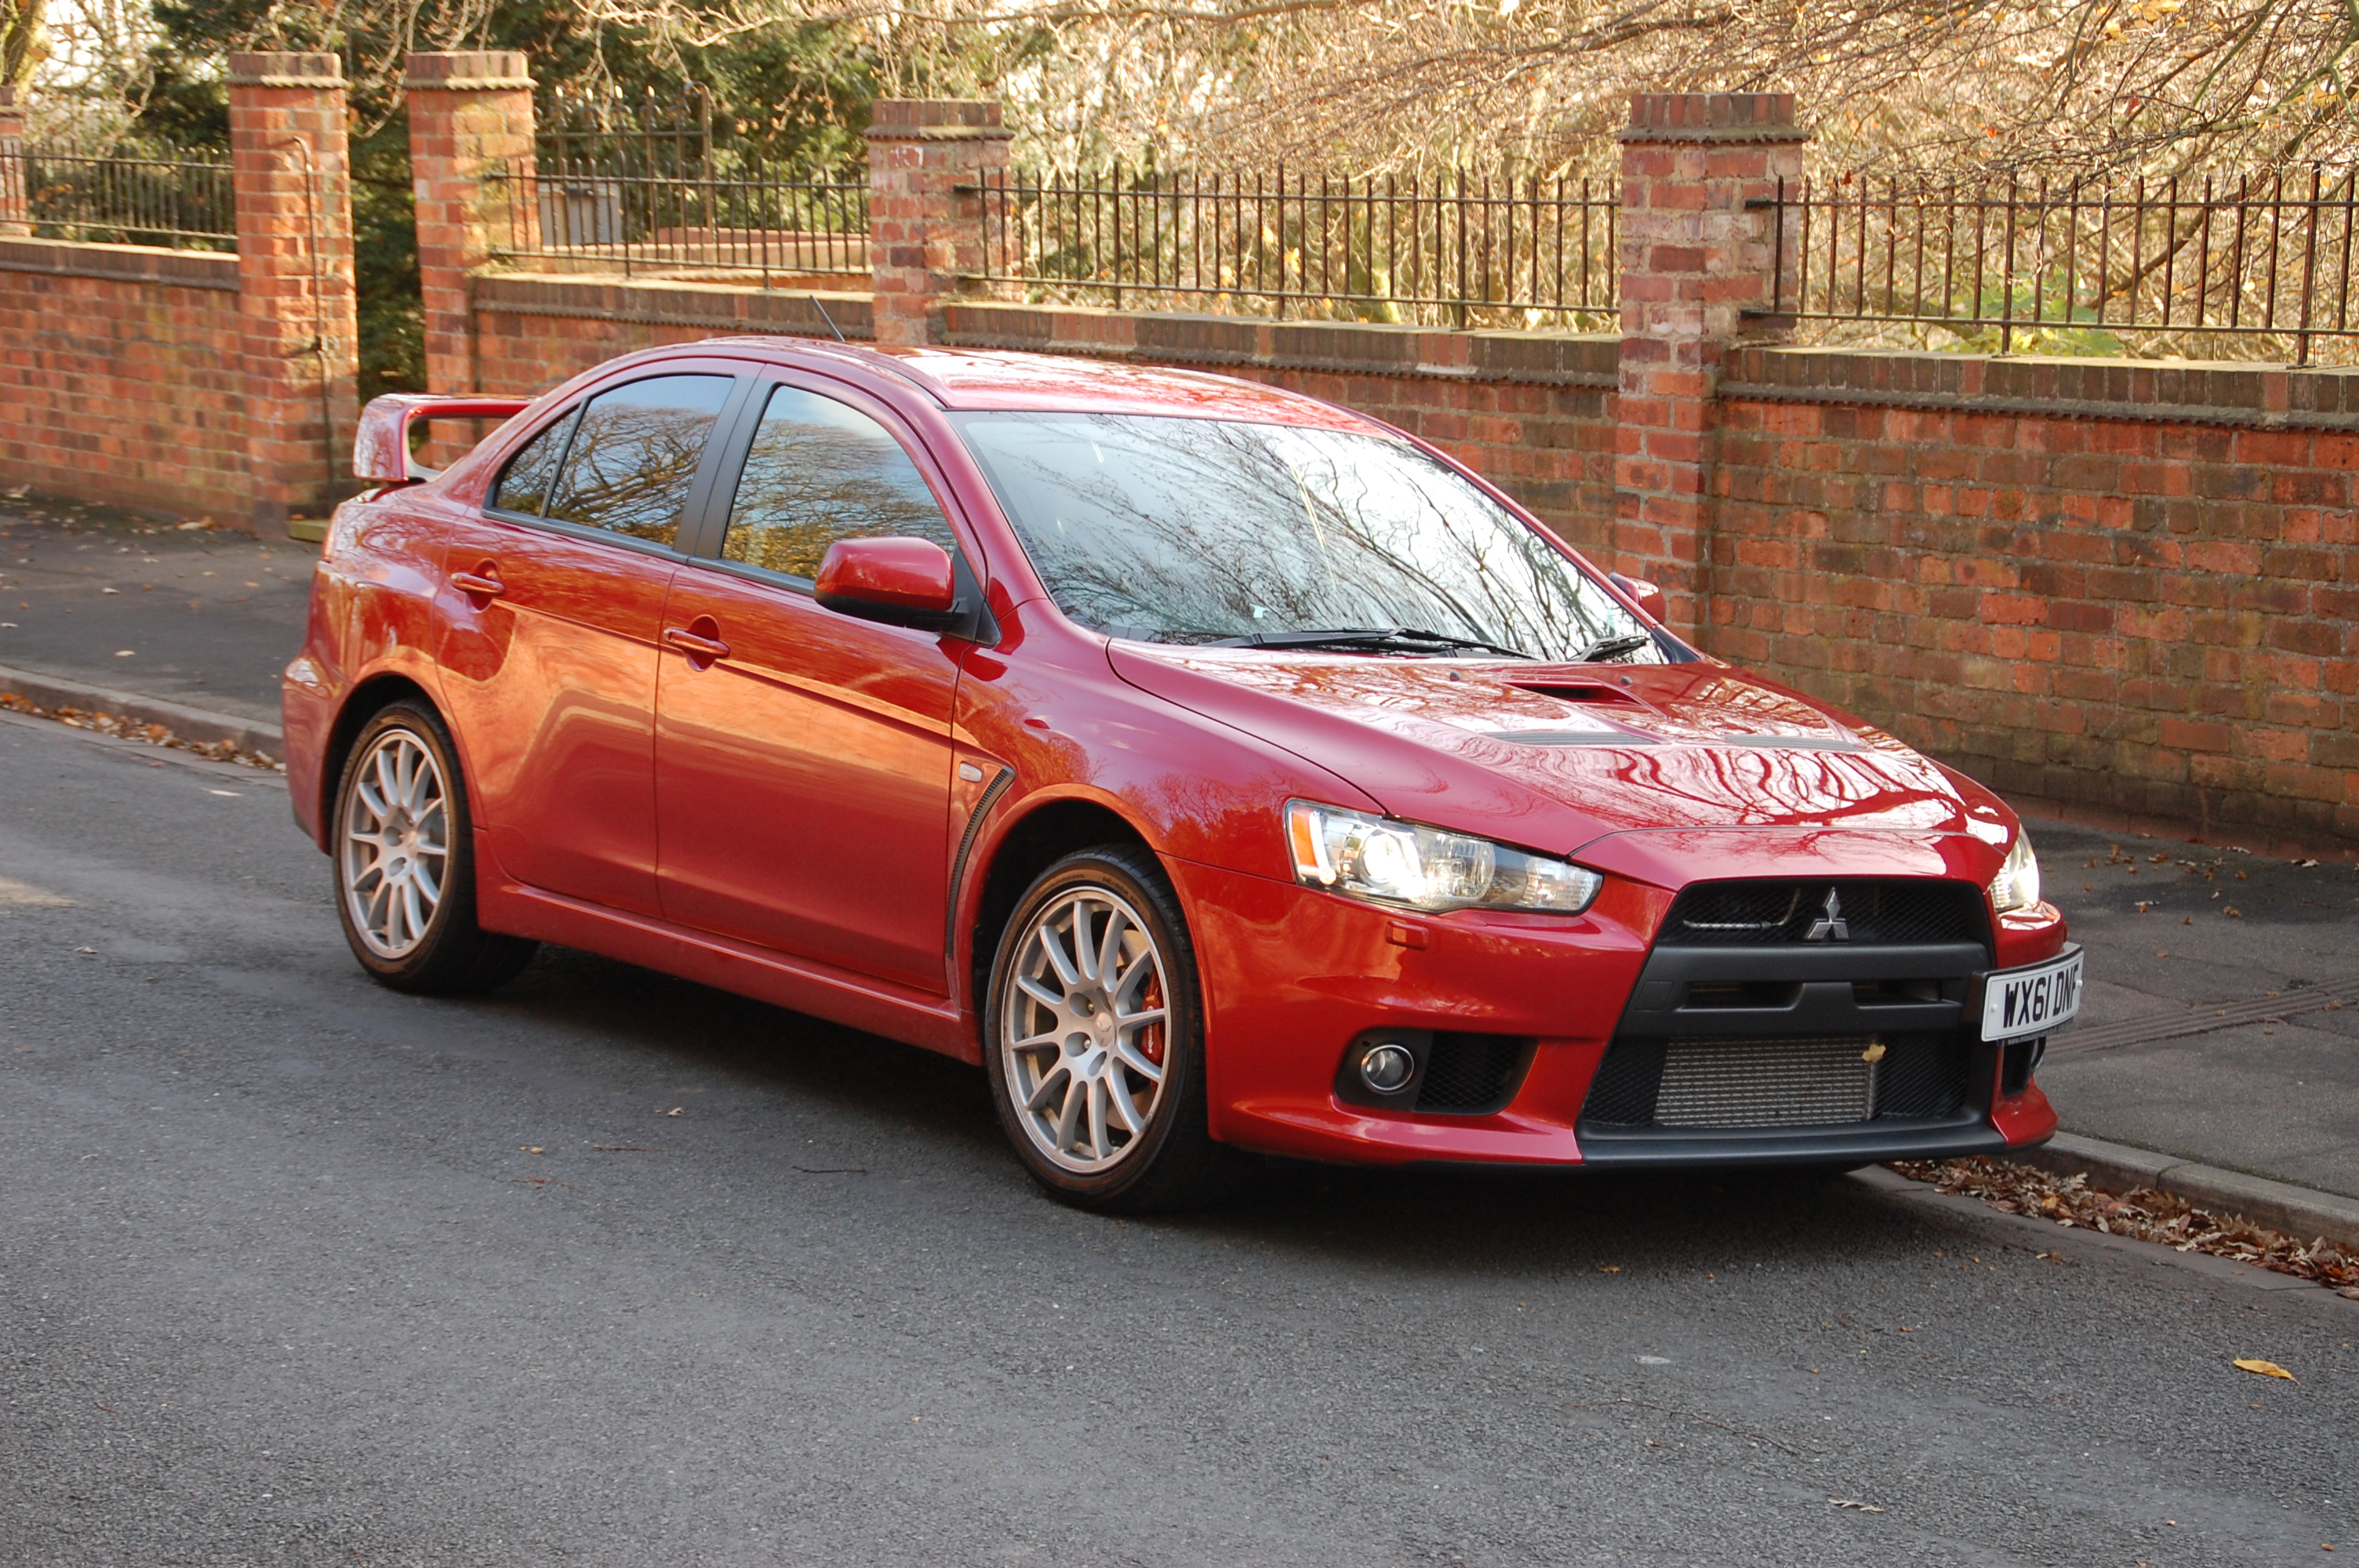 mitsubishi lancer evolution x gsr fq 330 sst road test petroleum vitae. Black Bedroom Furniture Sets. Home Design Ideas